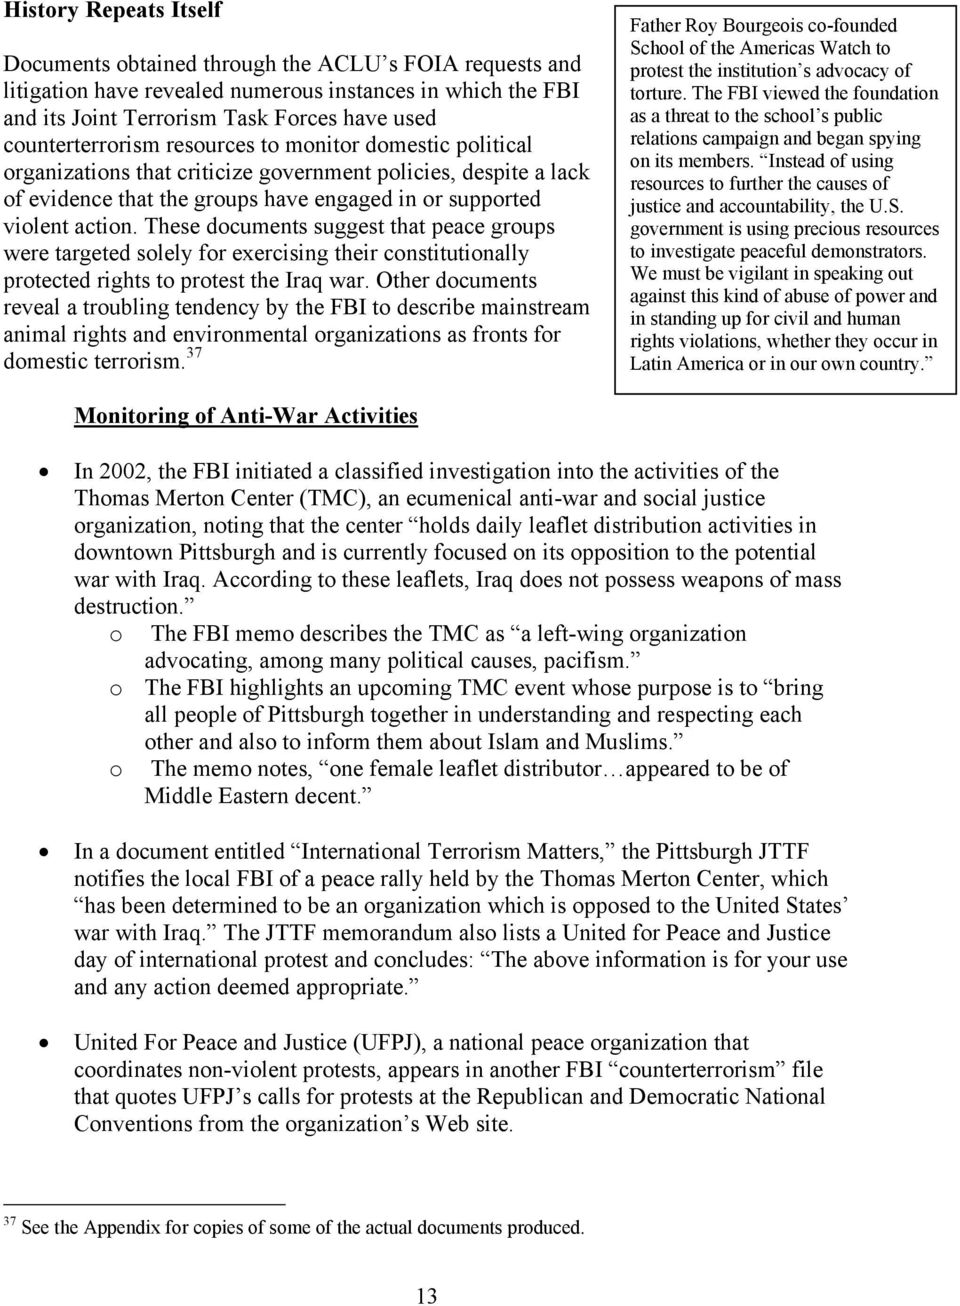 These documents suggest that peace groups were targeted solely for exercising their constitutionally protected rights to protest the Iraq war.